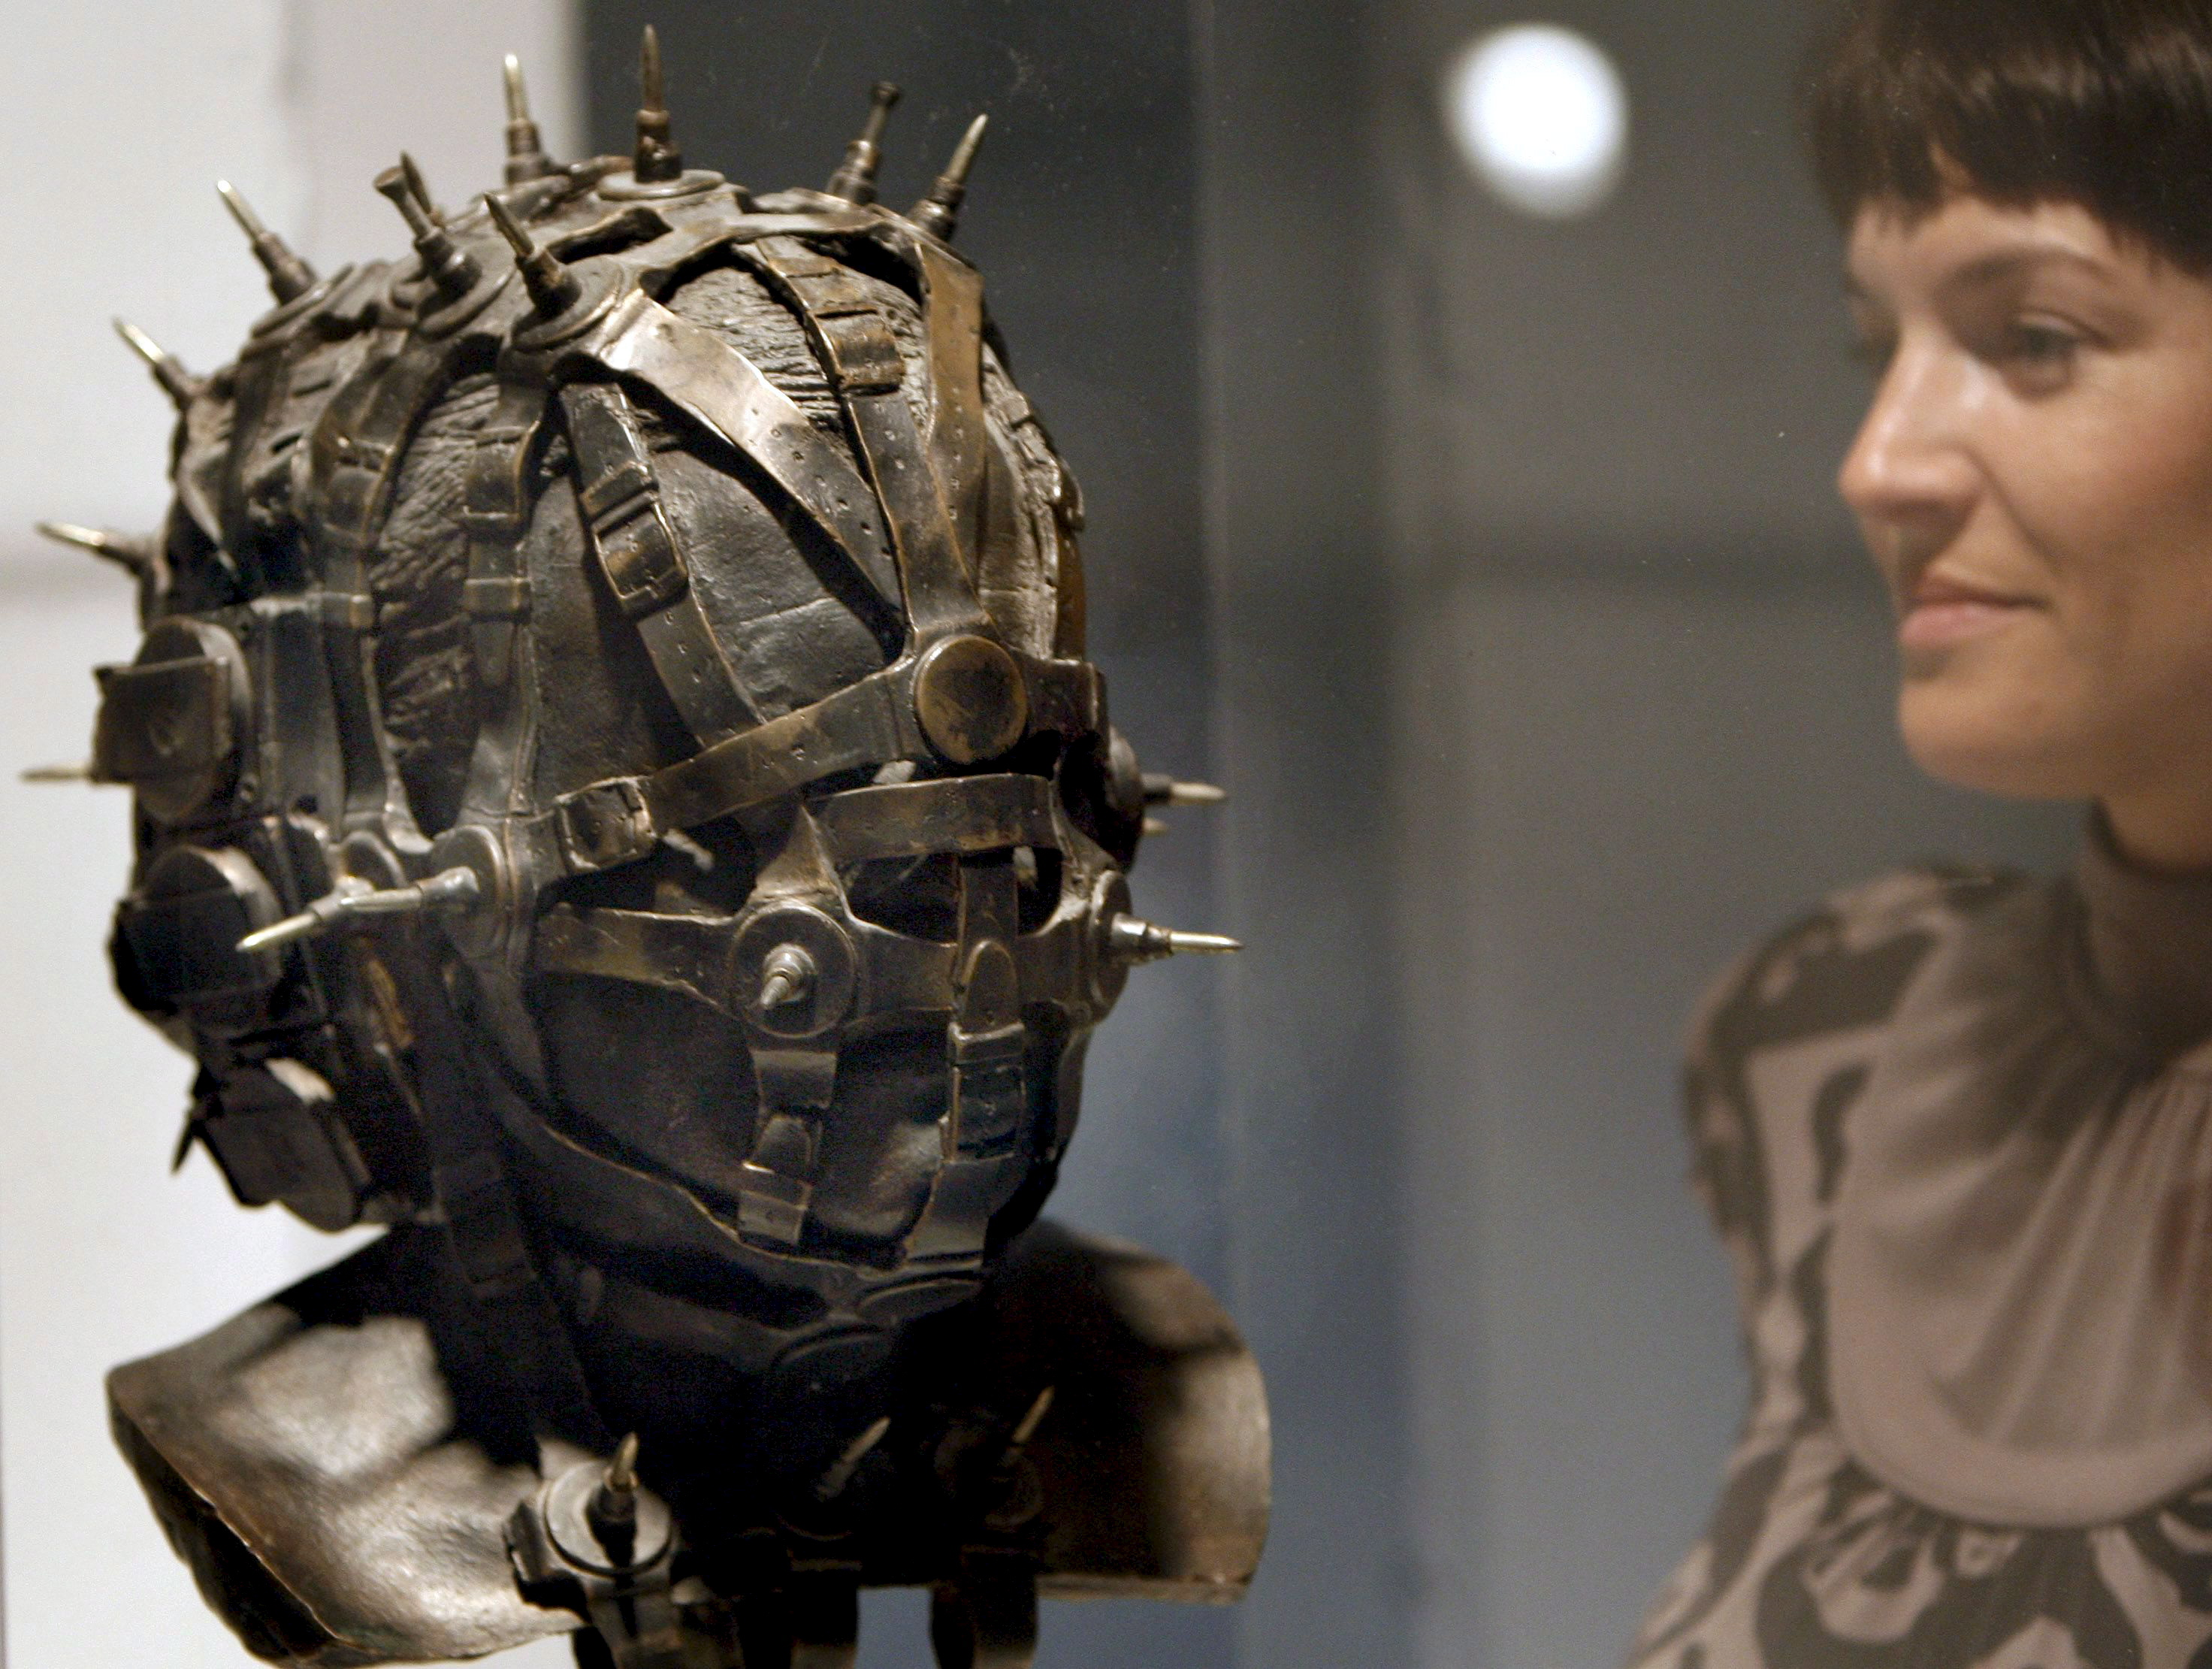 H.R.Giger's 'Watchguardian, head V', on display at the 'Swiss Design in Hollywood' exhibition, at the Technical University of Valecia, Spain on March 4, 2009.